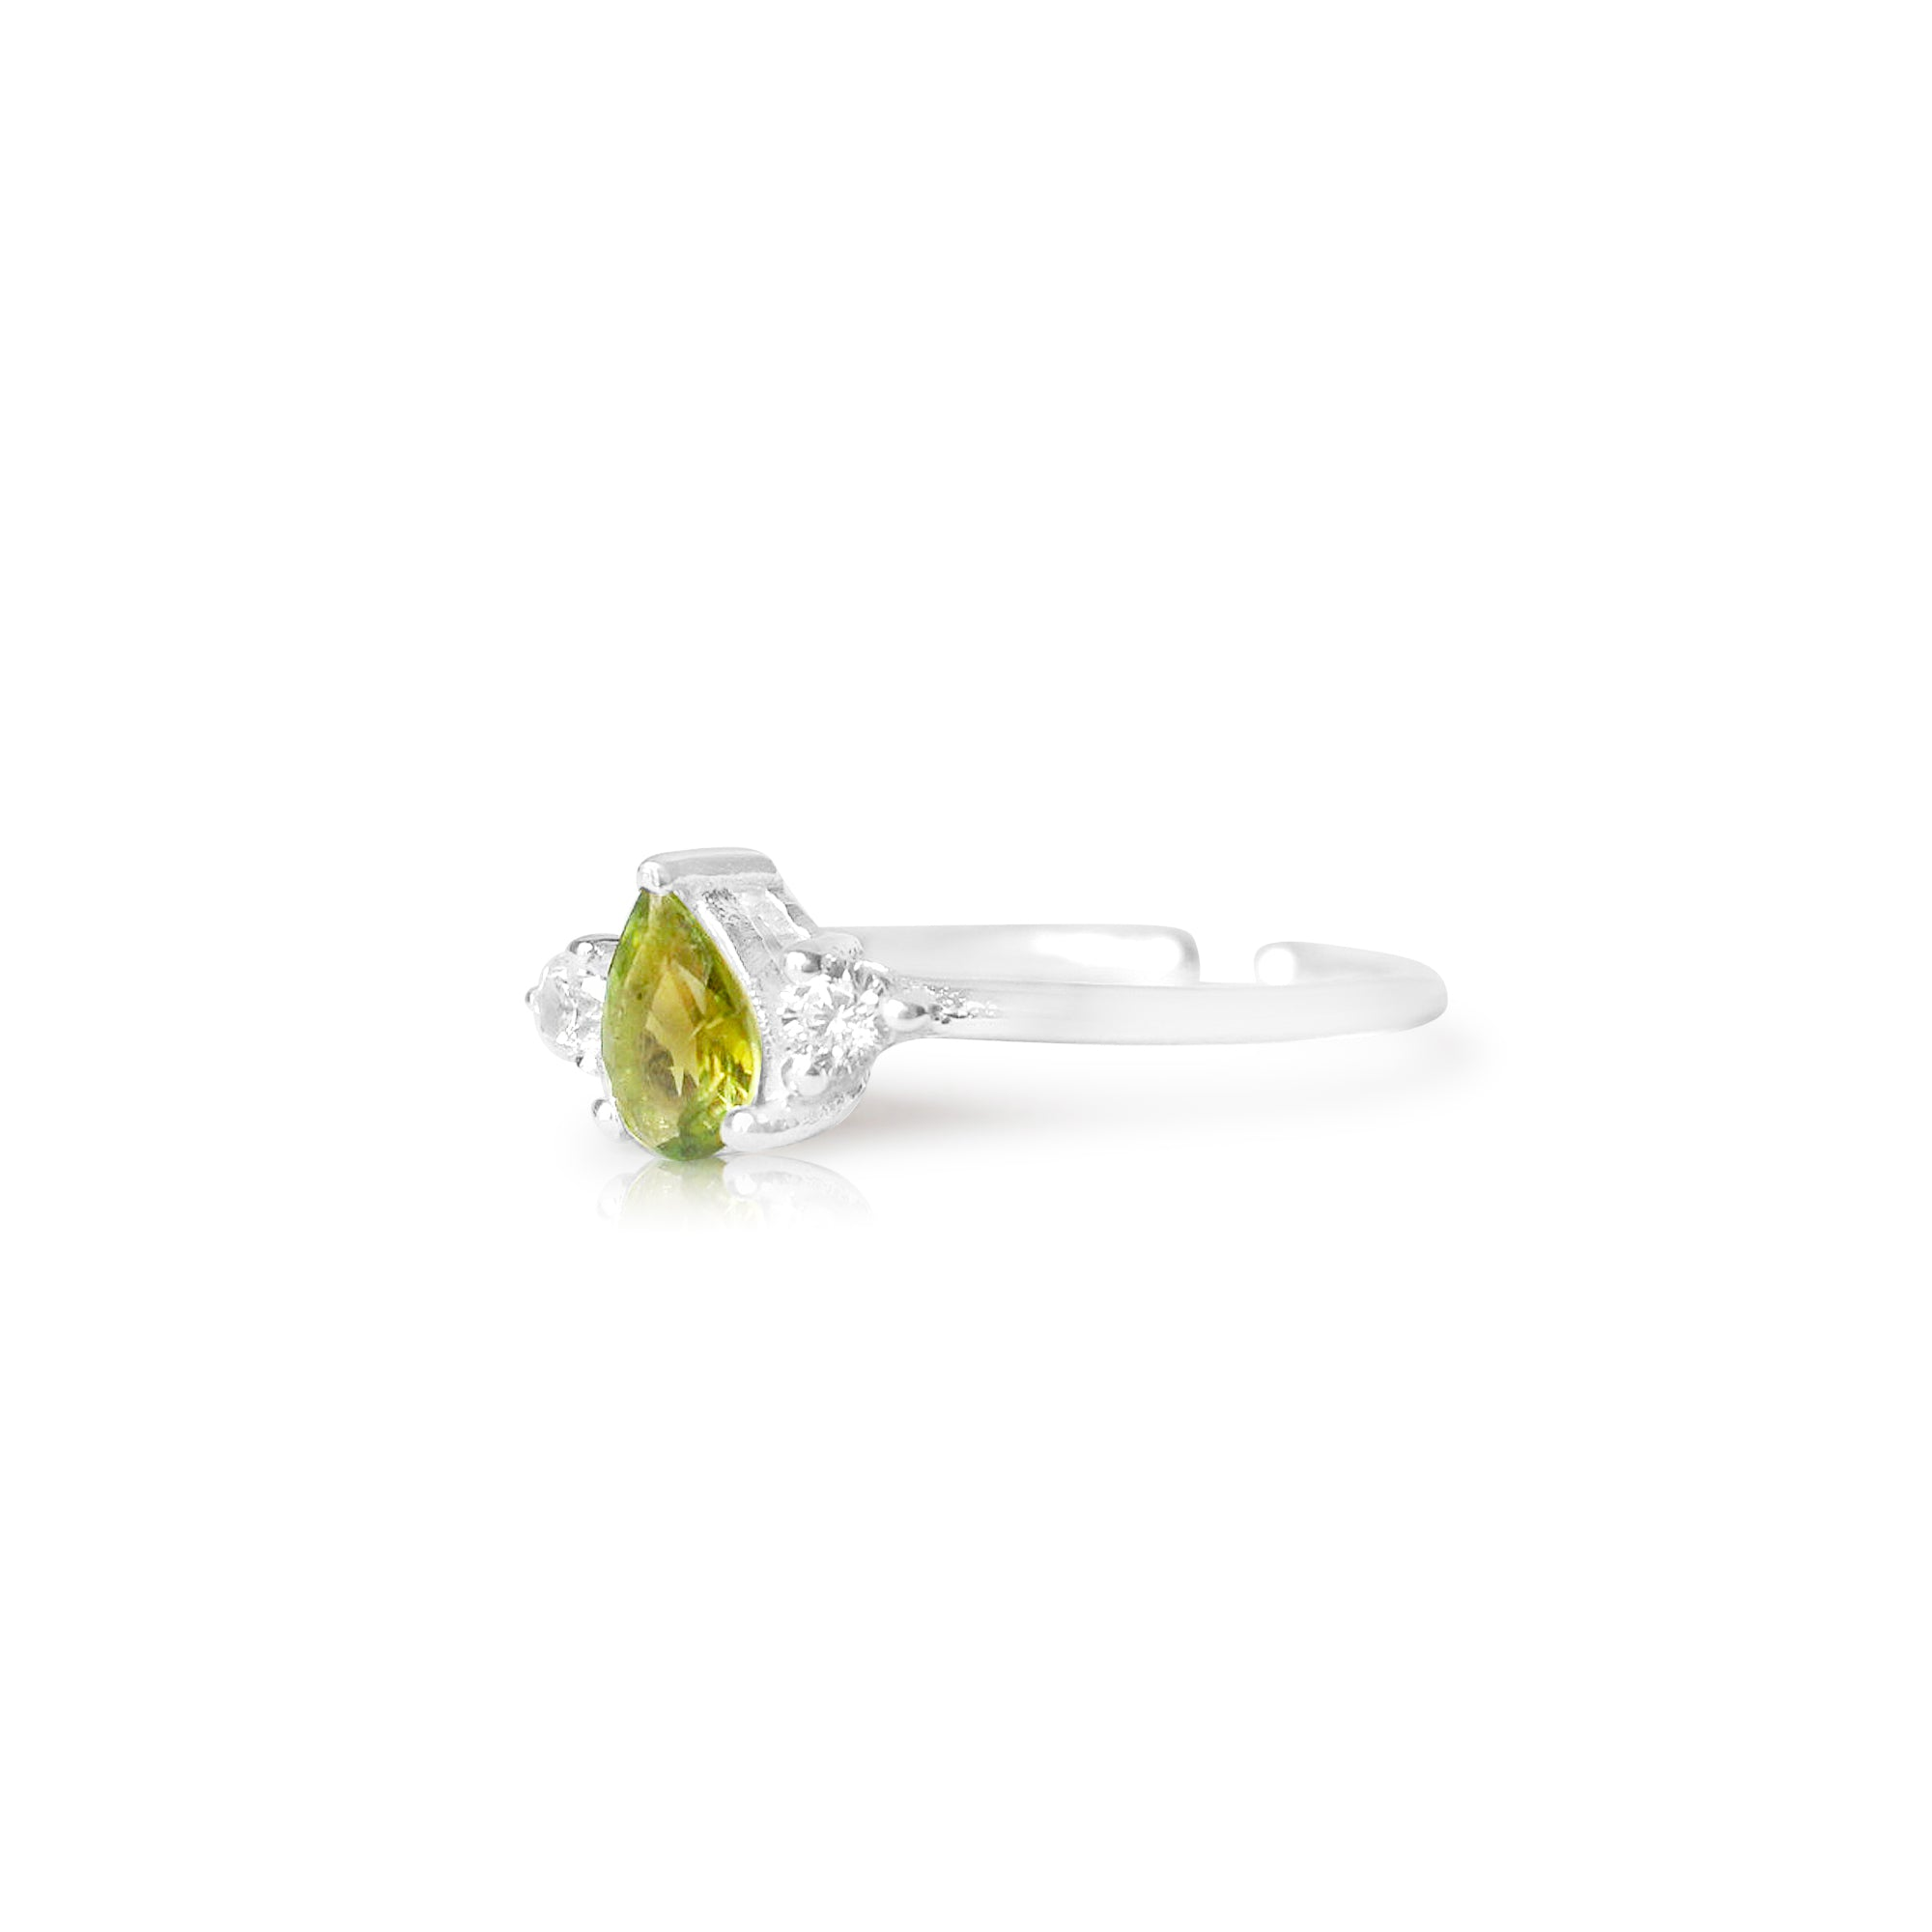 925 Silver Luxe Series Ring - Yumi (Green Tourmaline) - Tessellate.Co